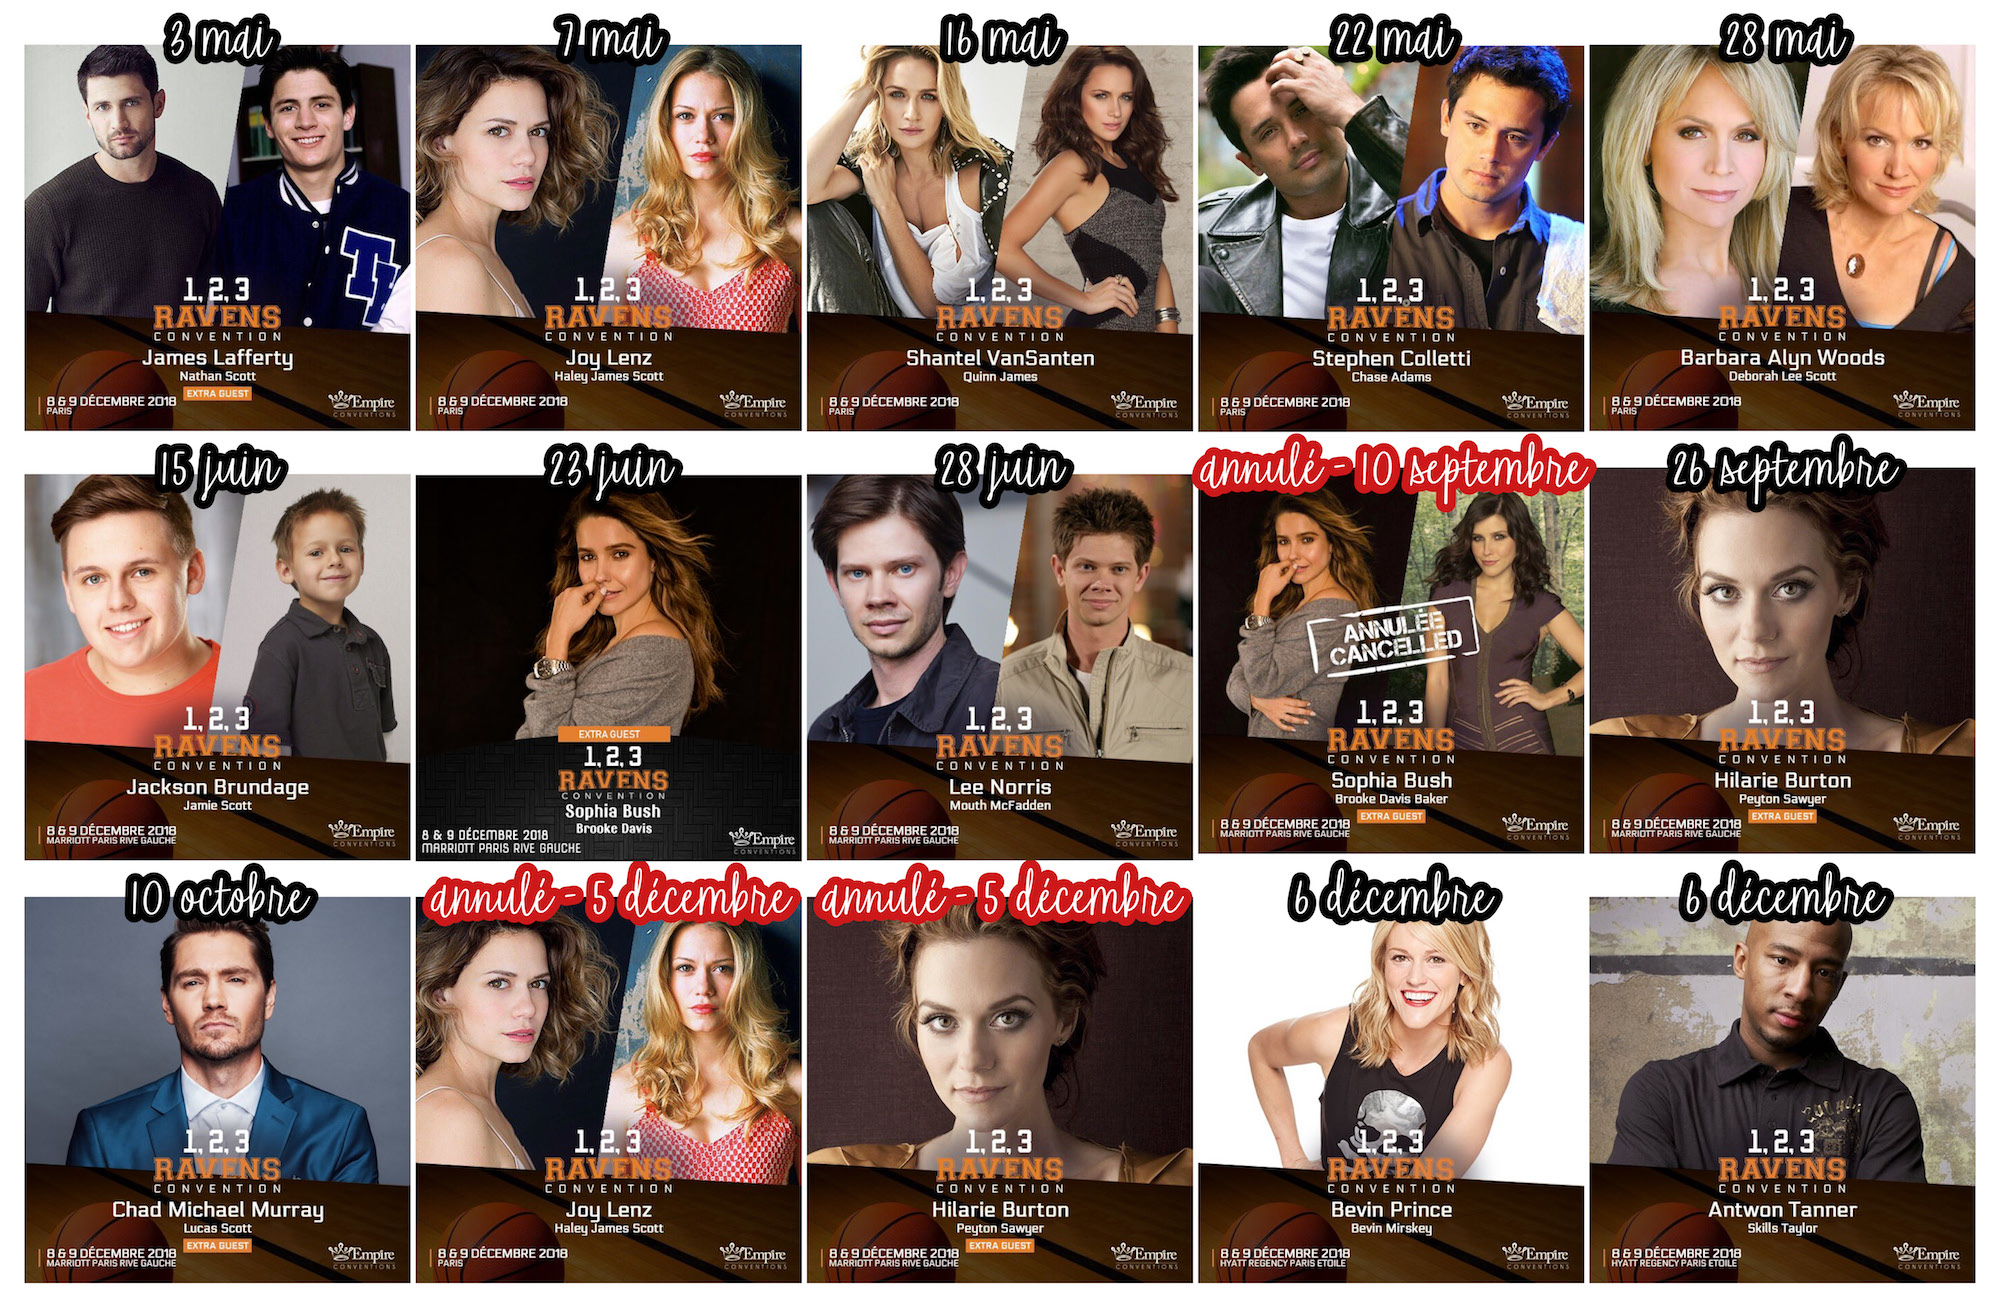 Convention OTH - 1, 2, 3, Ravens line up